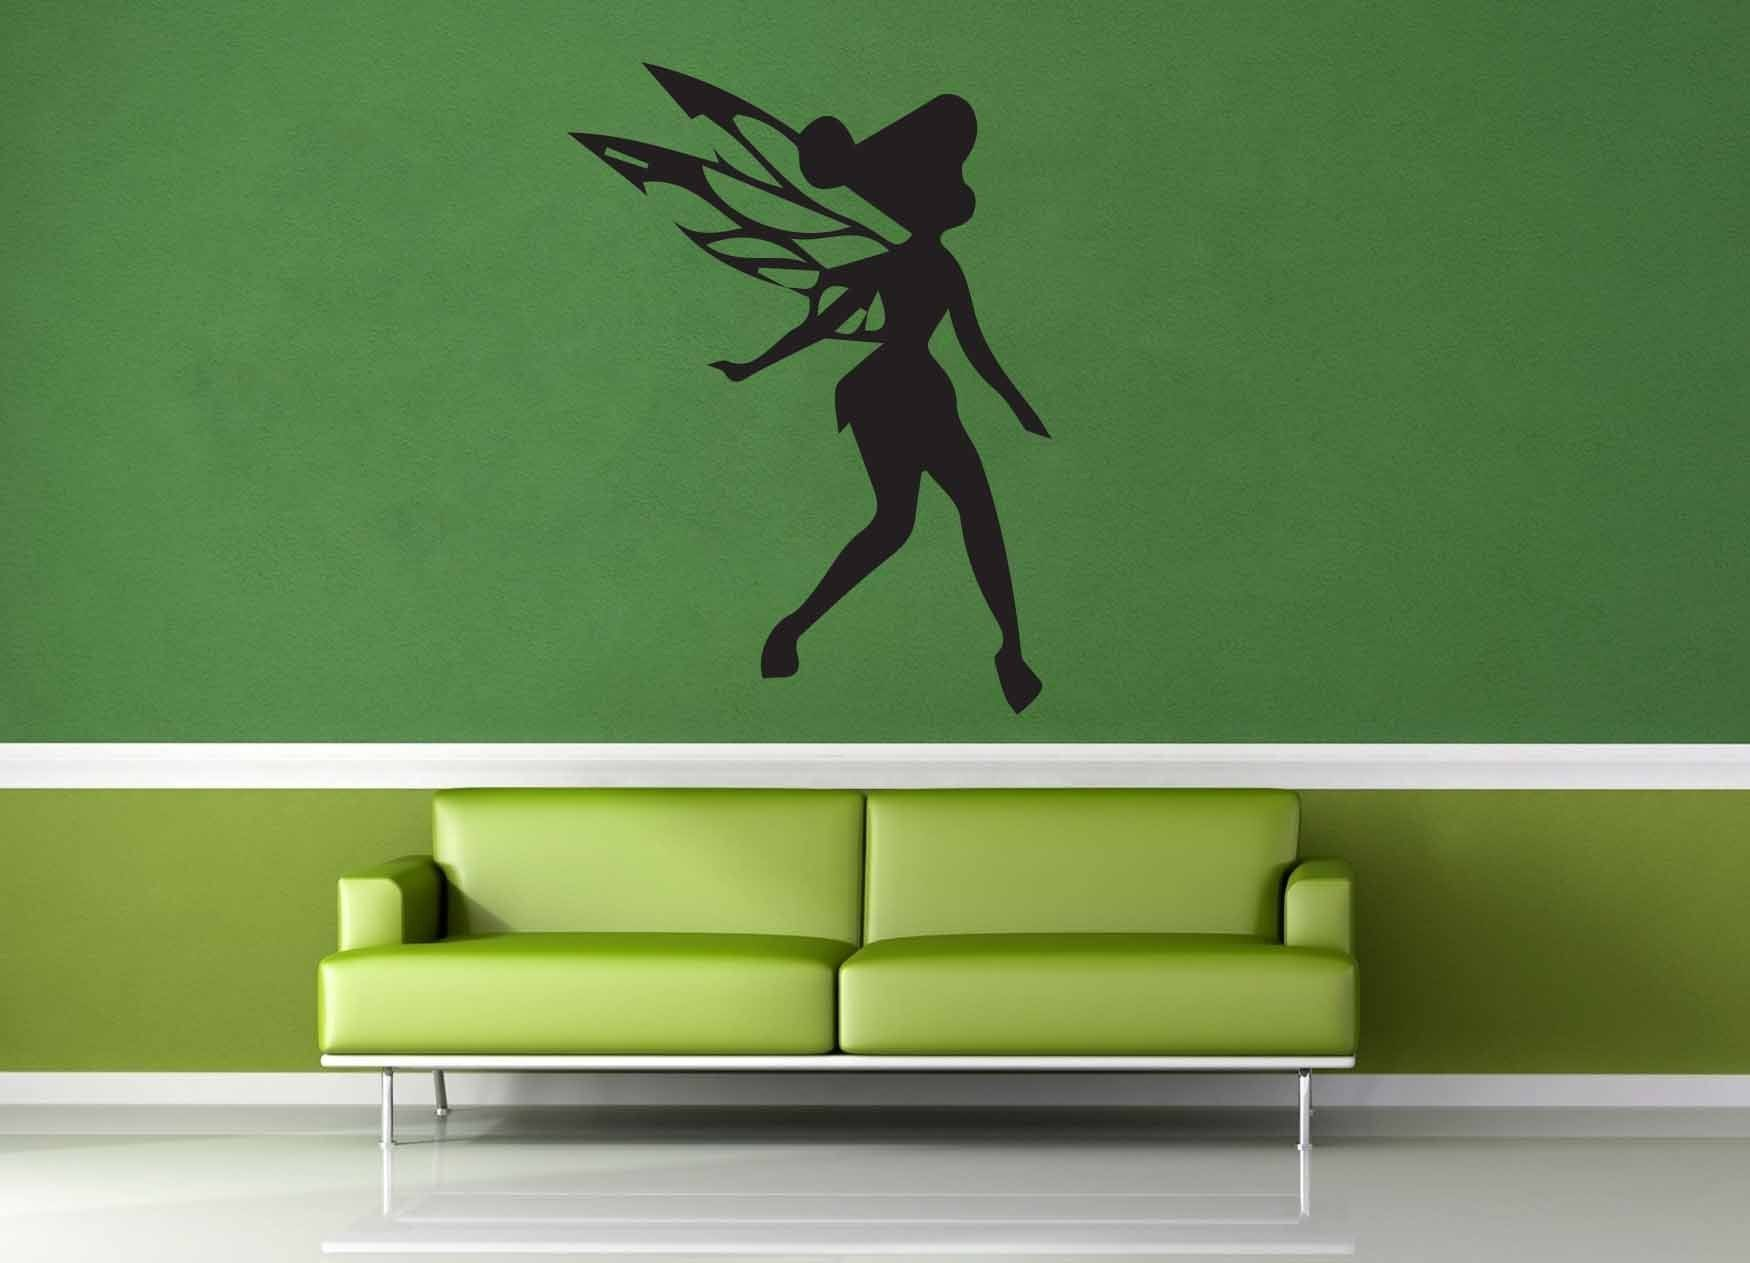 Tinkerbell silhouette wall decal no 2 geekerymade tinkerbell silhouette wall decal no 2 amipublicfo Images